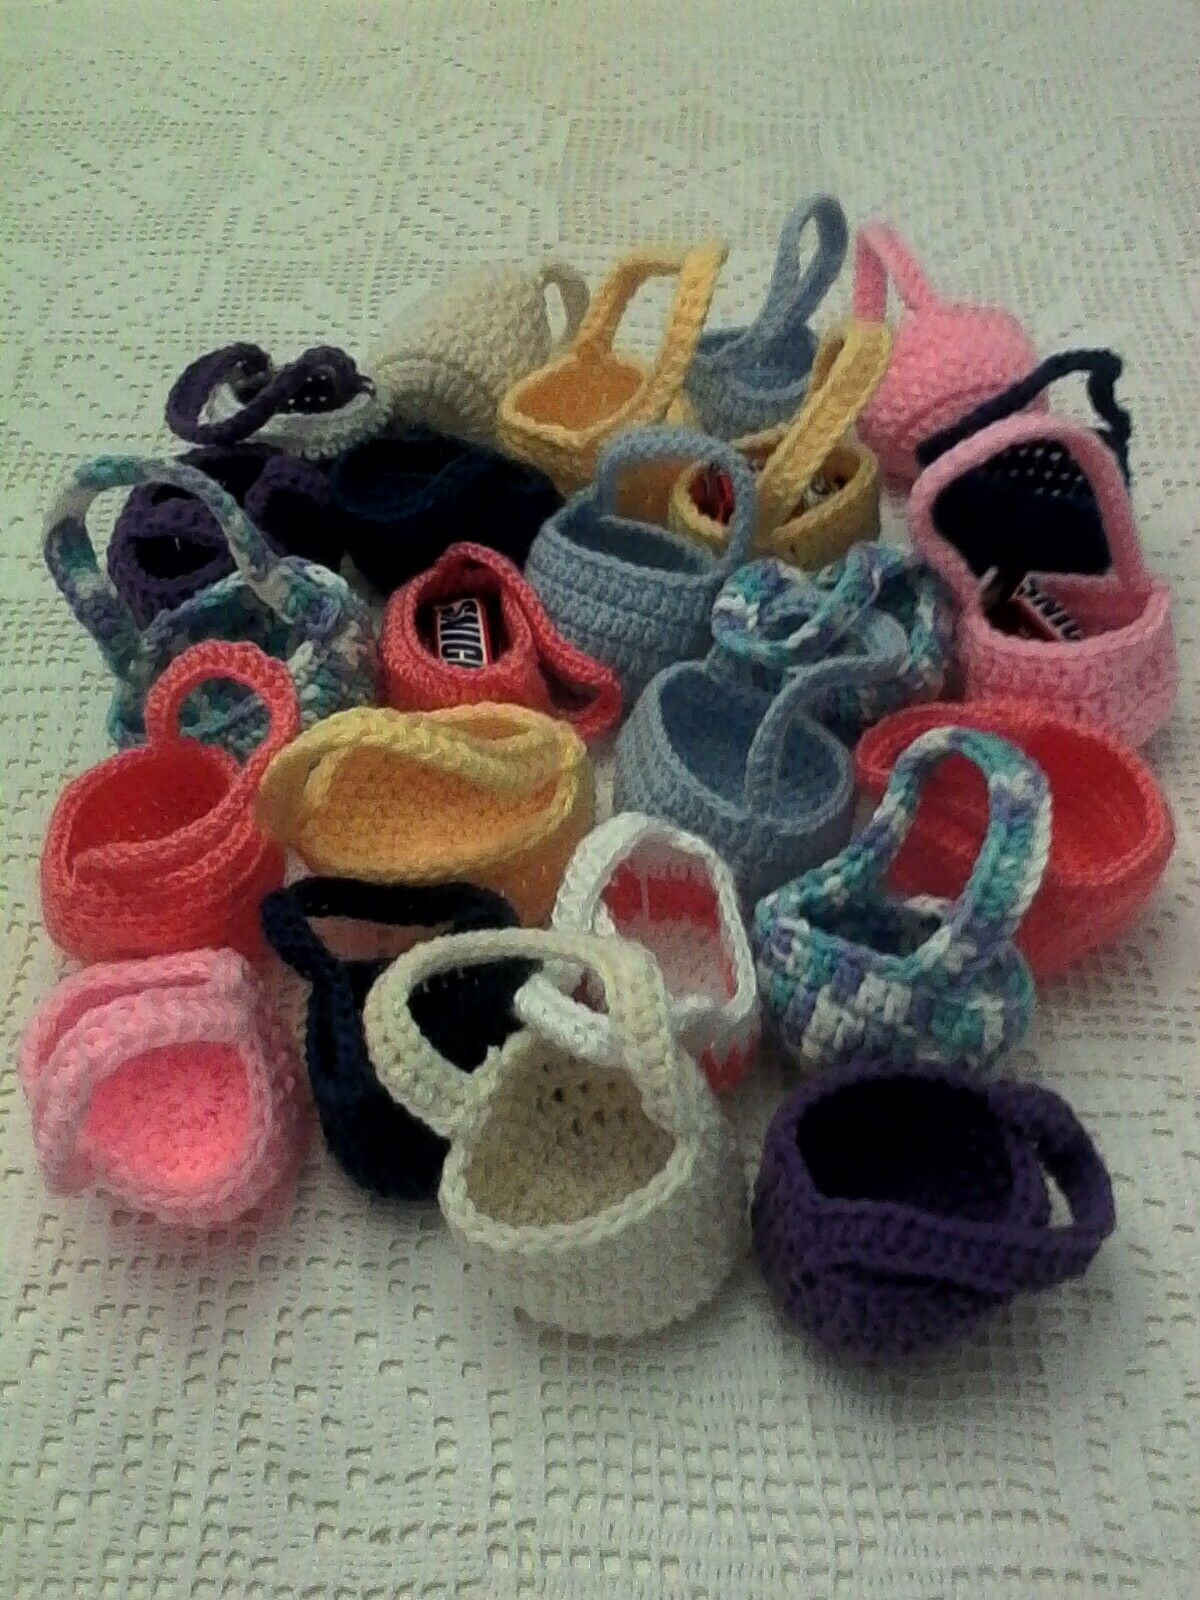 Crocheted mini baskets for party favors